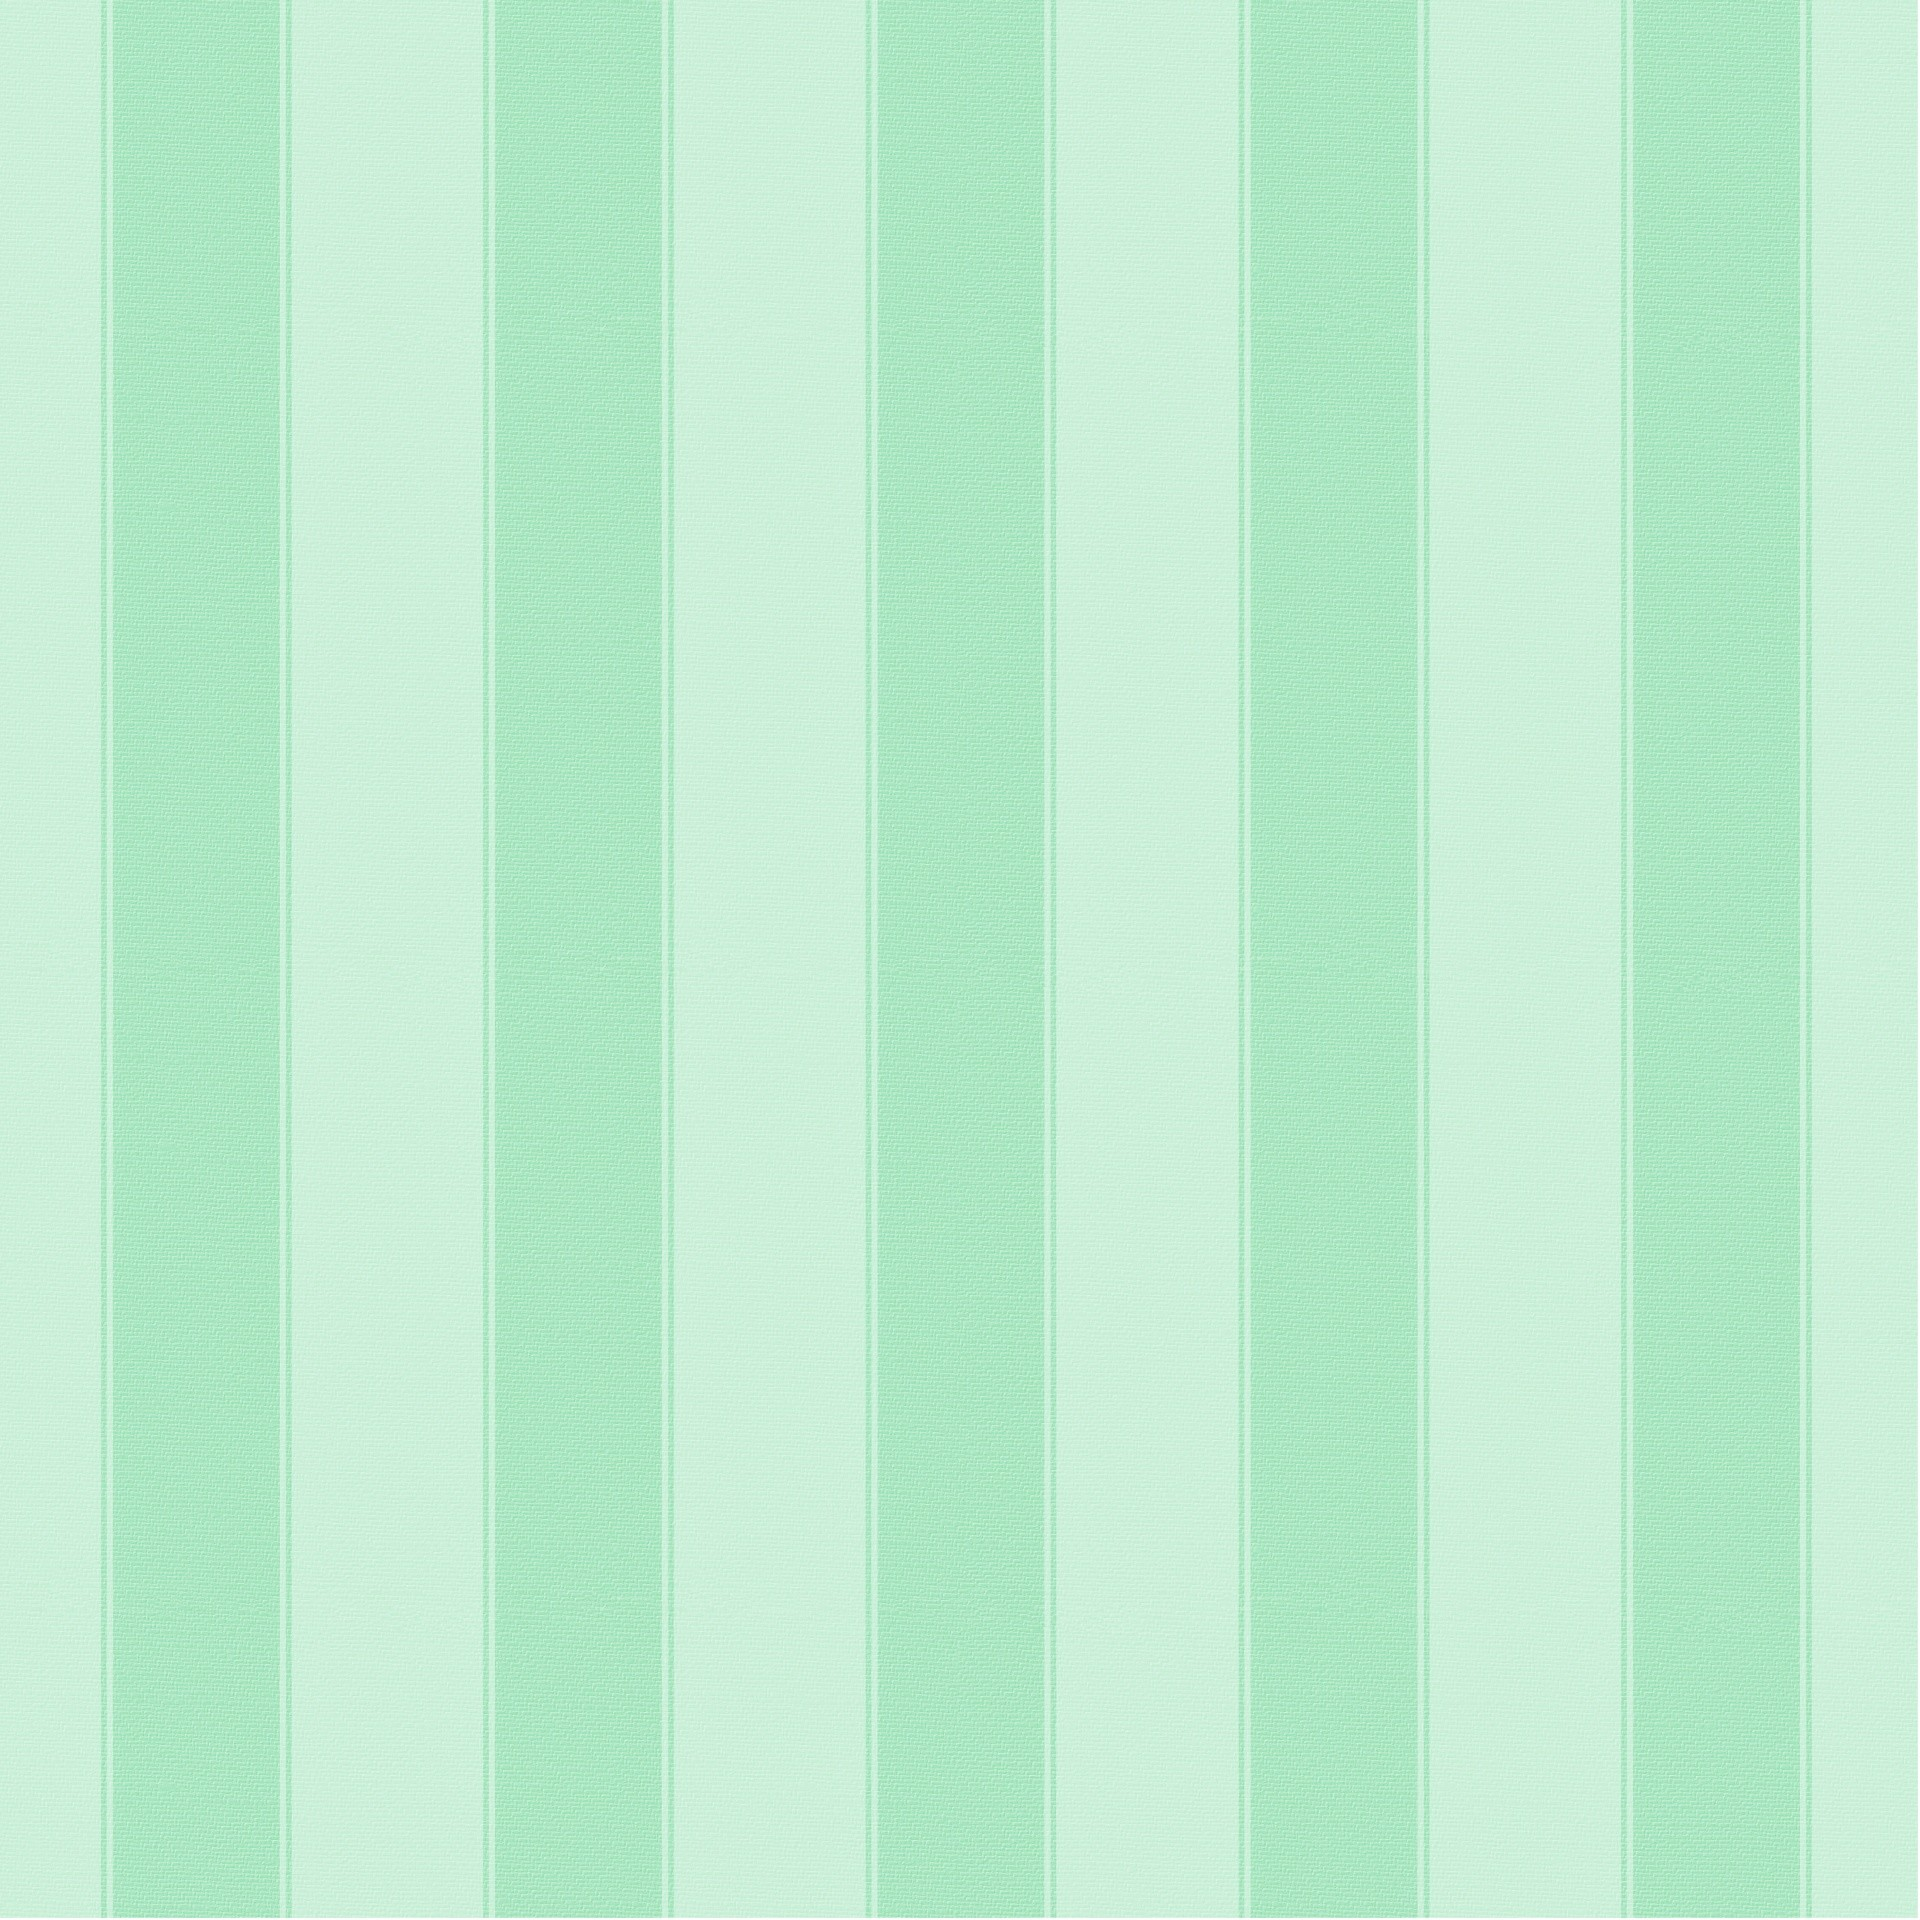 1920x1920 Stripes Background Mint Green